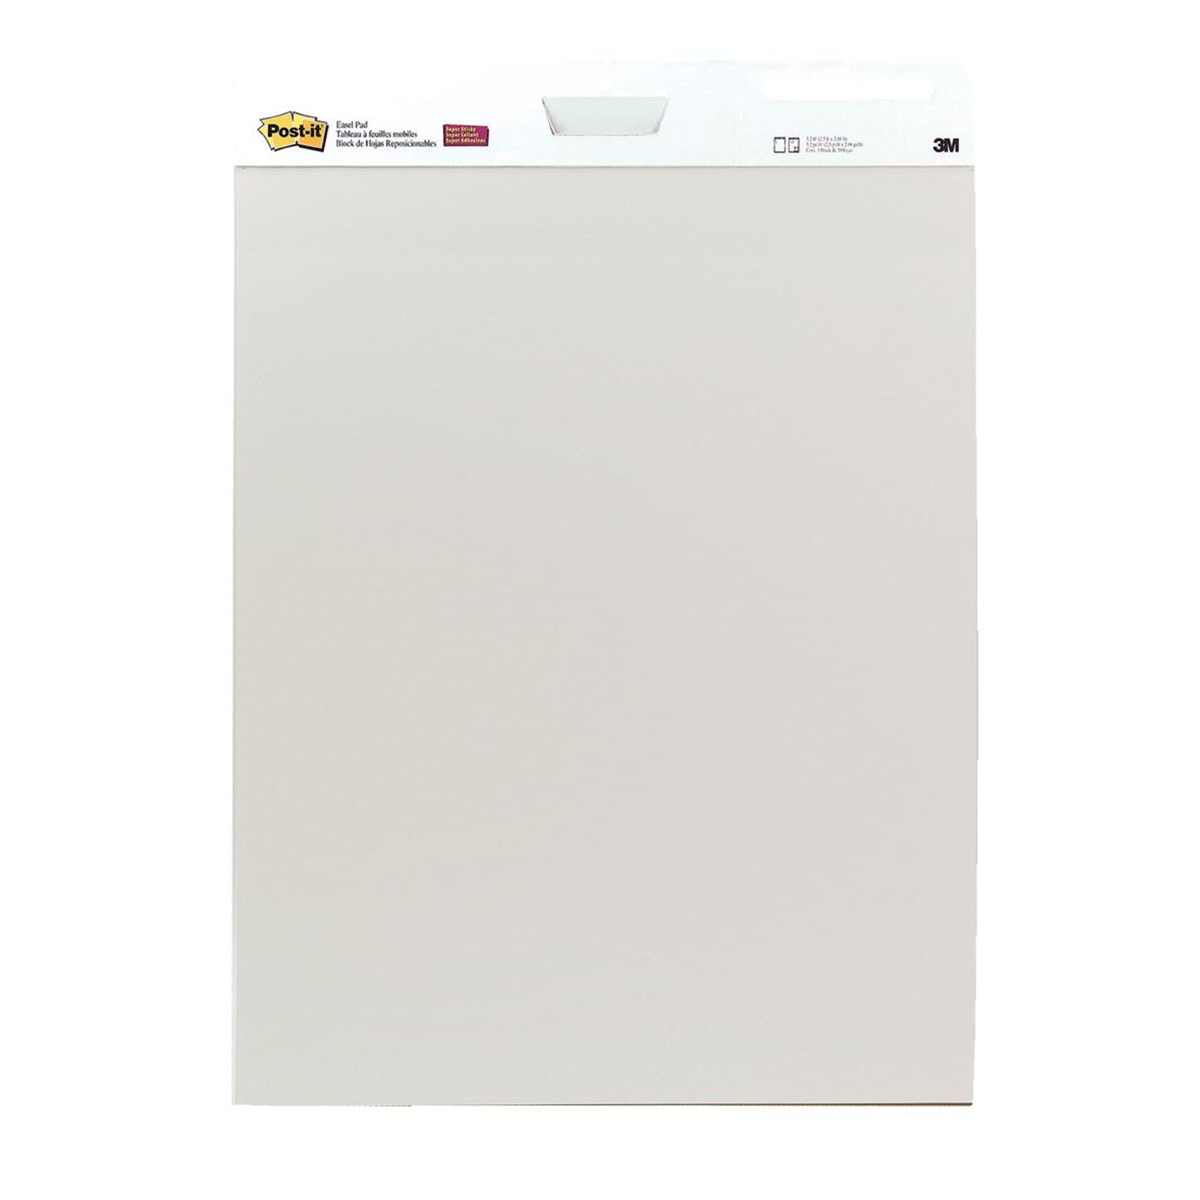 Pads Post-it Easel Pad Self-adhesive 30 Sheets 762x635mm Ref FT510105826 4x Free Note Pads Pack 2